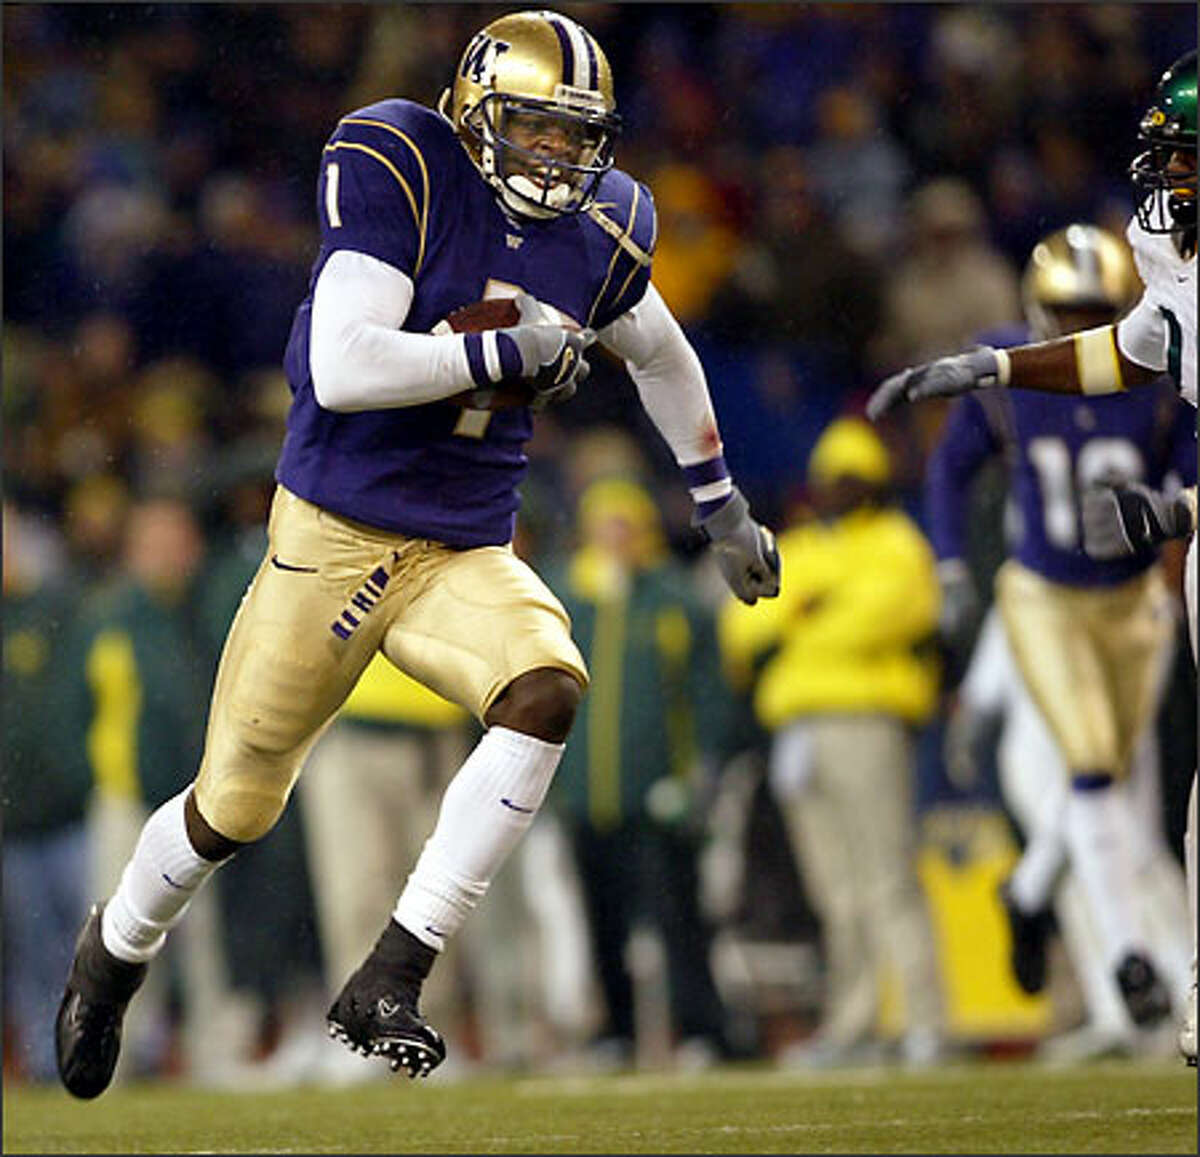 UW's Reggie Williams (1) heads down the field for a touchdown in second half.